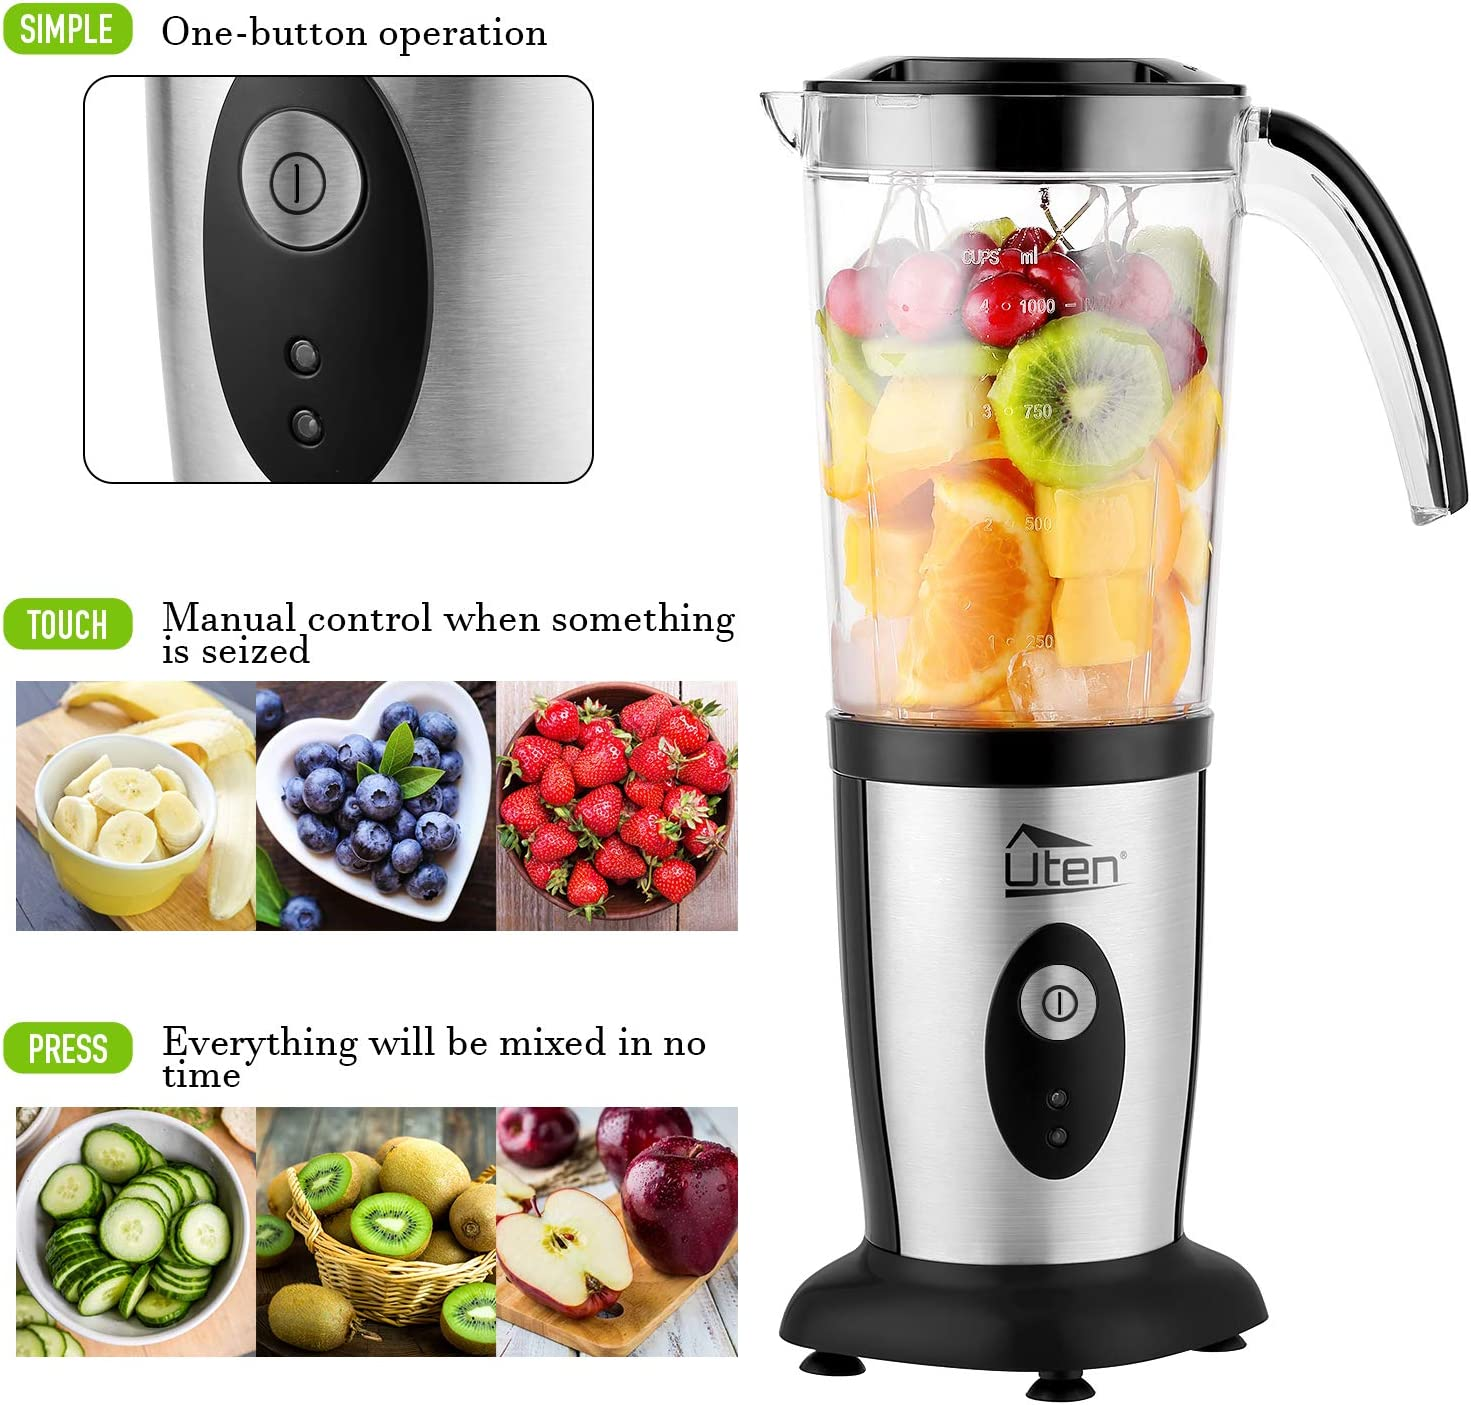 Uten Blender, Multi-Functional Smoothie Maker and Mixer for Juicers Fruit Vegetable 220W Automatic Blender Ice Crusher with 22,000 RPM/Min Silver-b